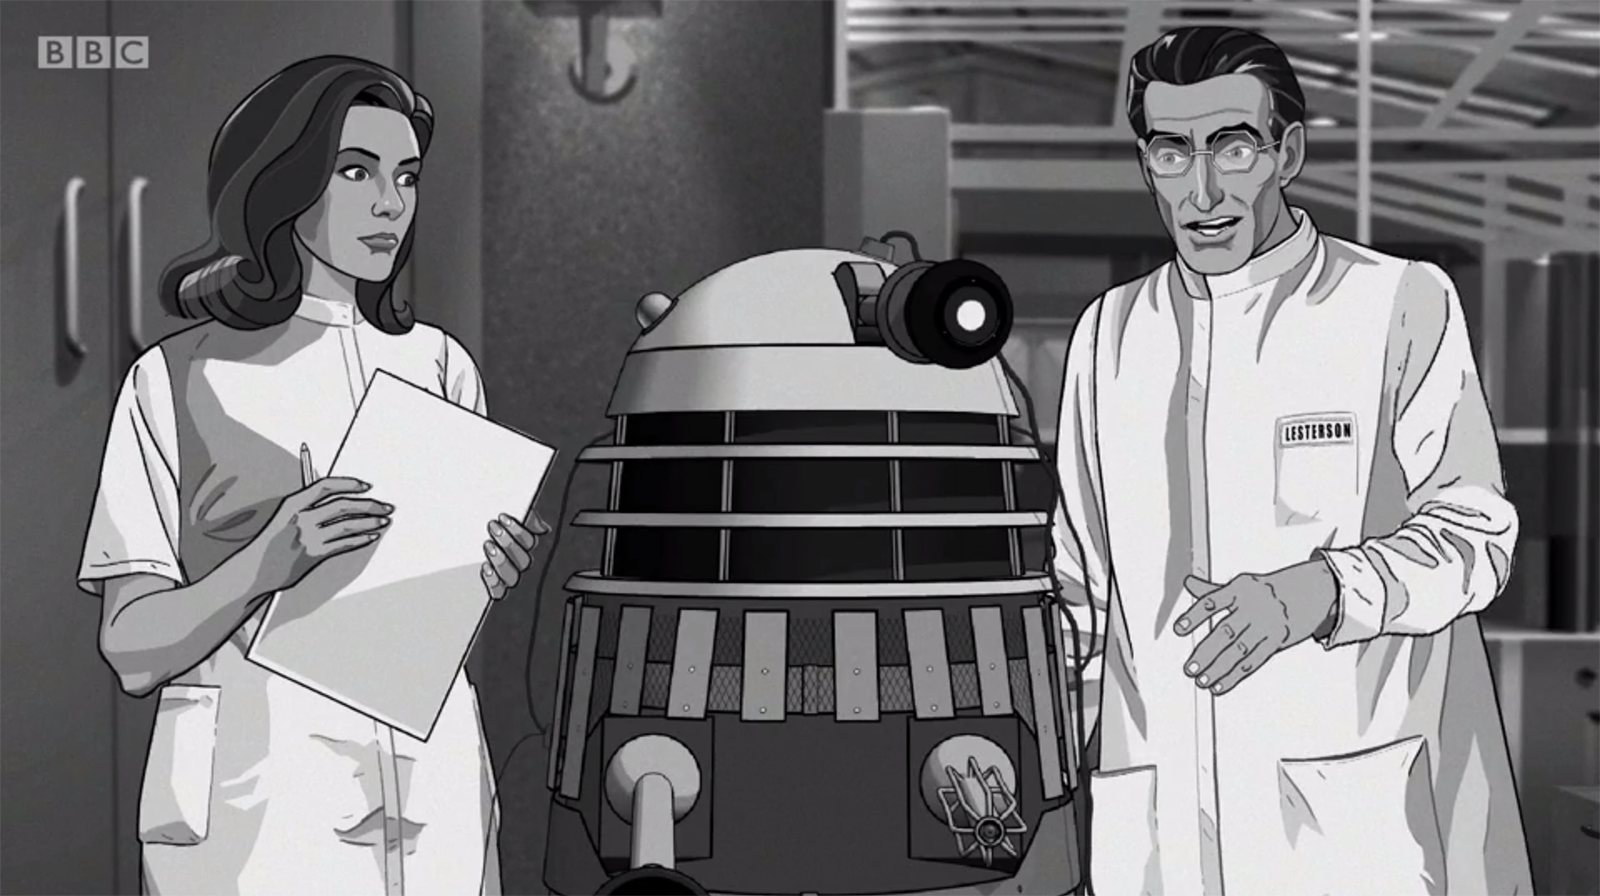 Janley and Lesterson in the animated 'Power of the Daleks'